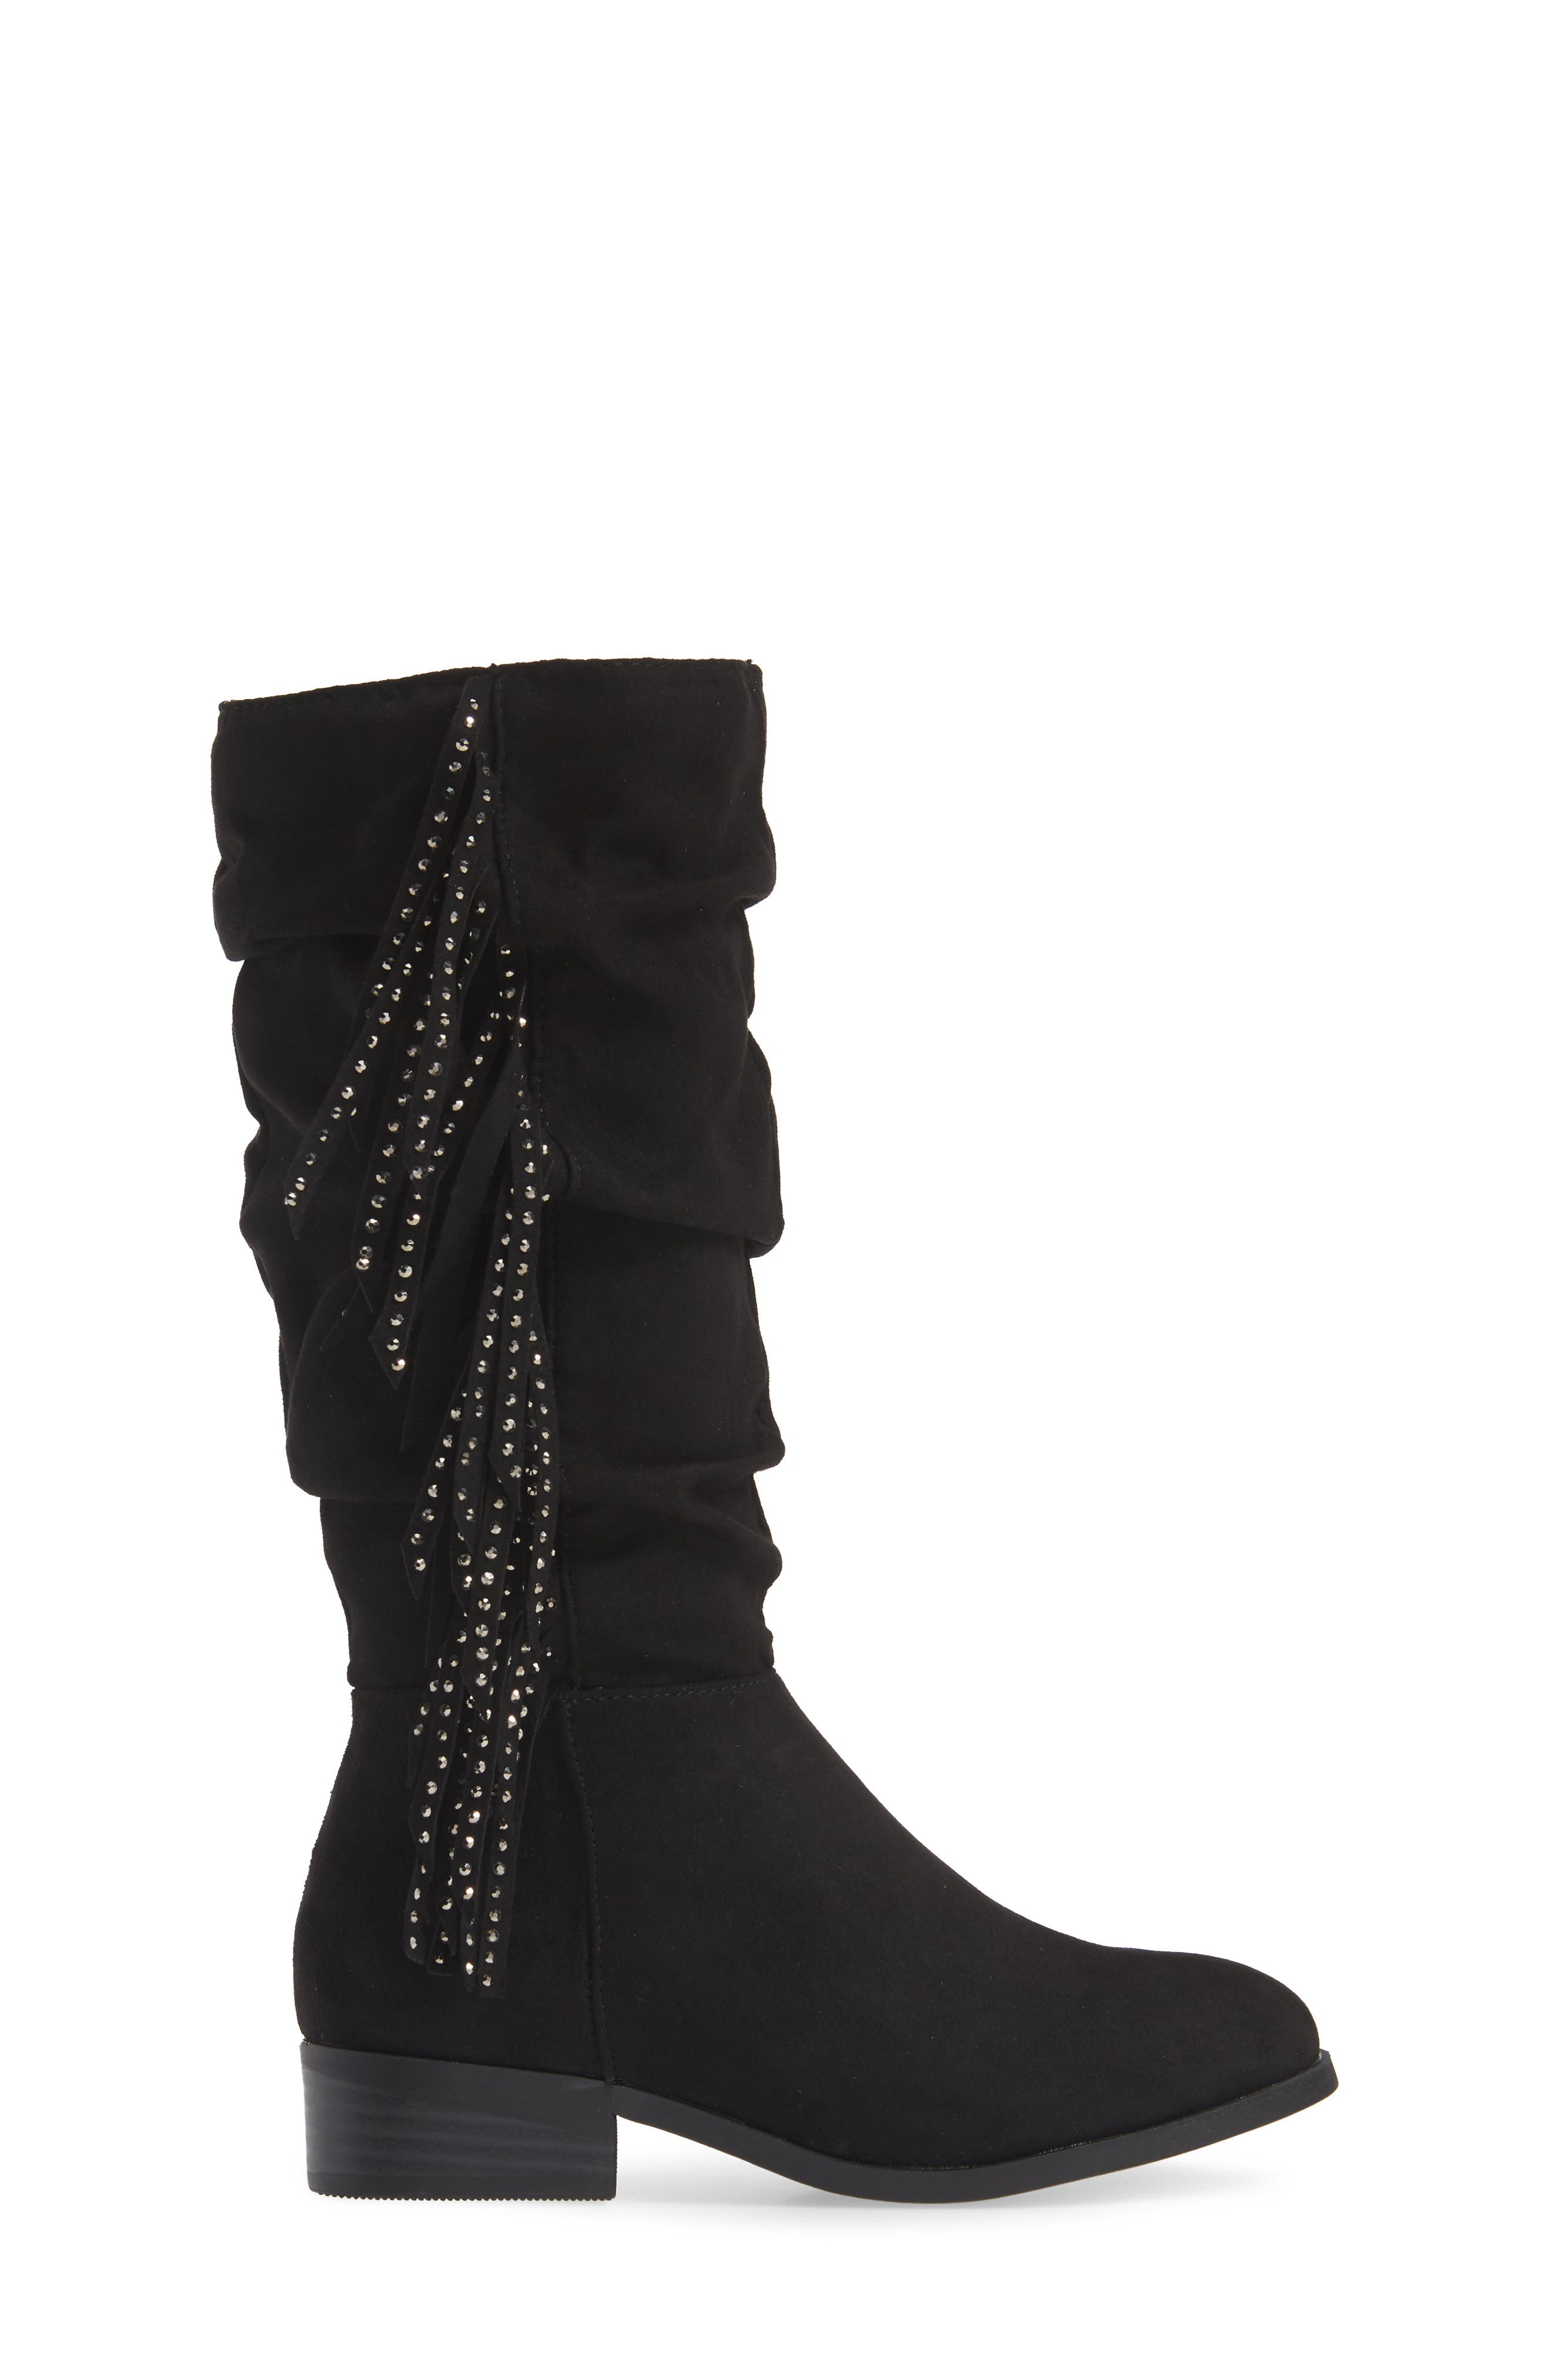 Jfringly Slouchy Fringed Boot,                             Alternate thumbnail 3, color,                             BLACK MICRO